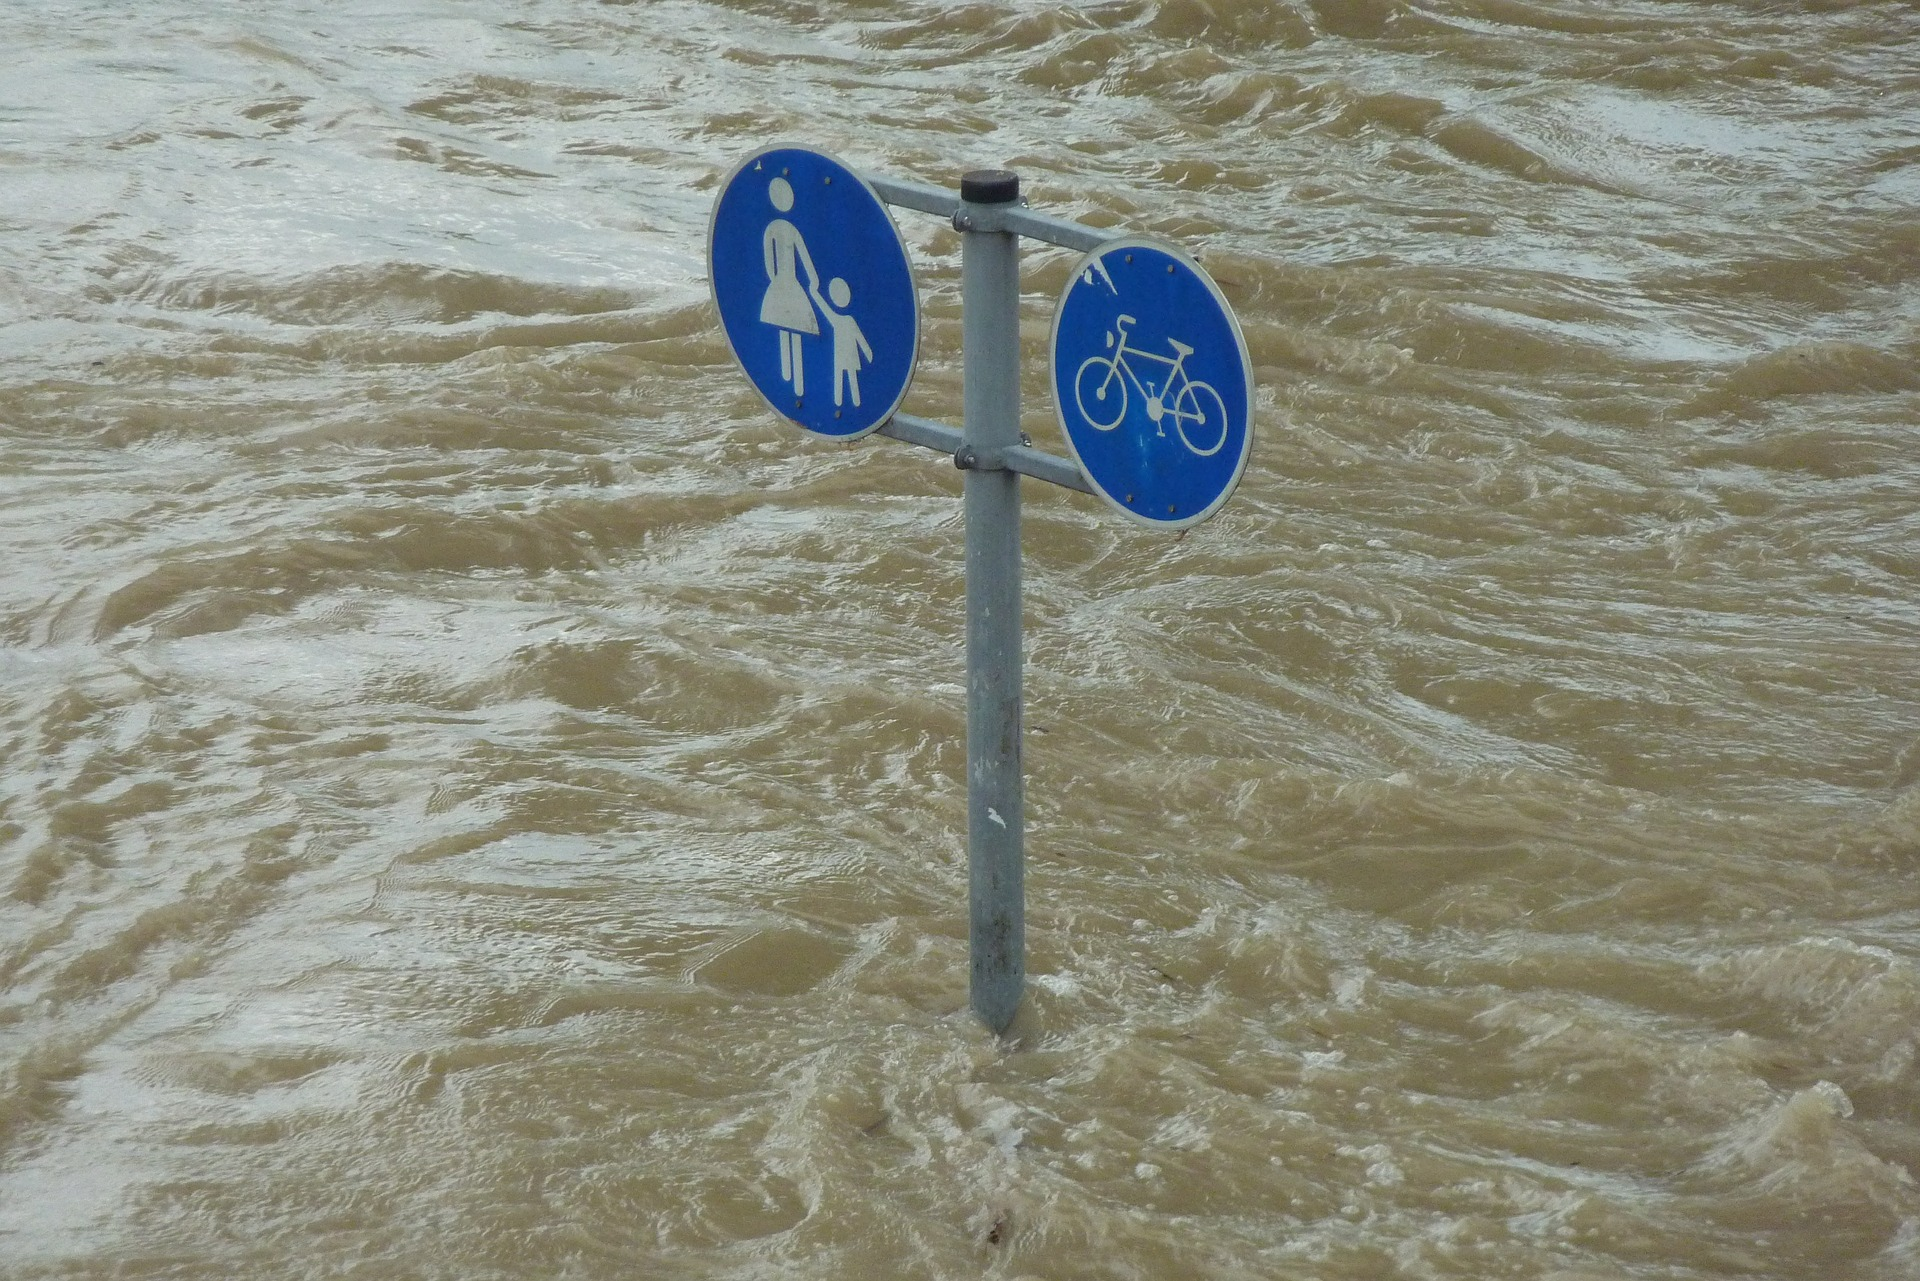 Image by hermann traub from pixabay high water 392707 1920